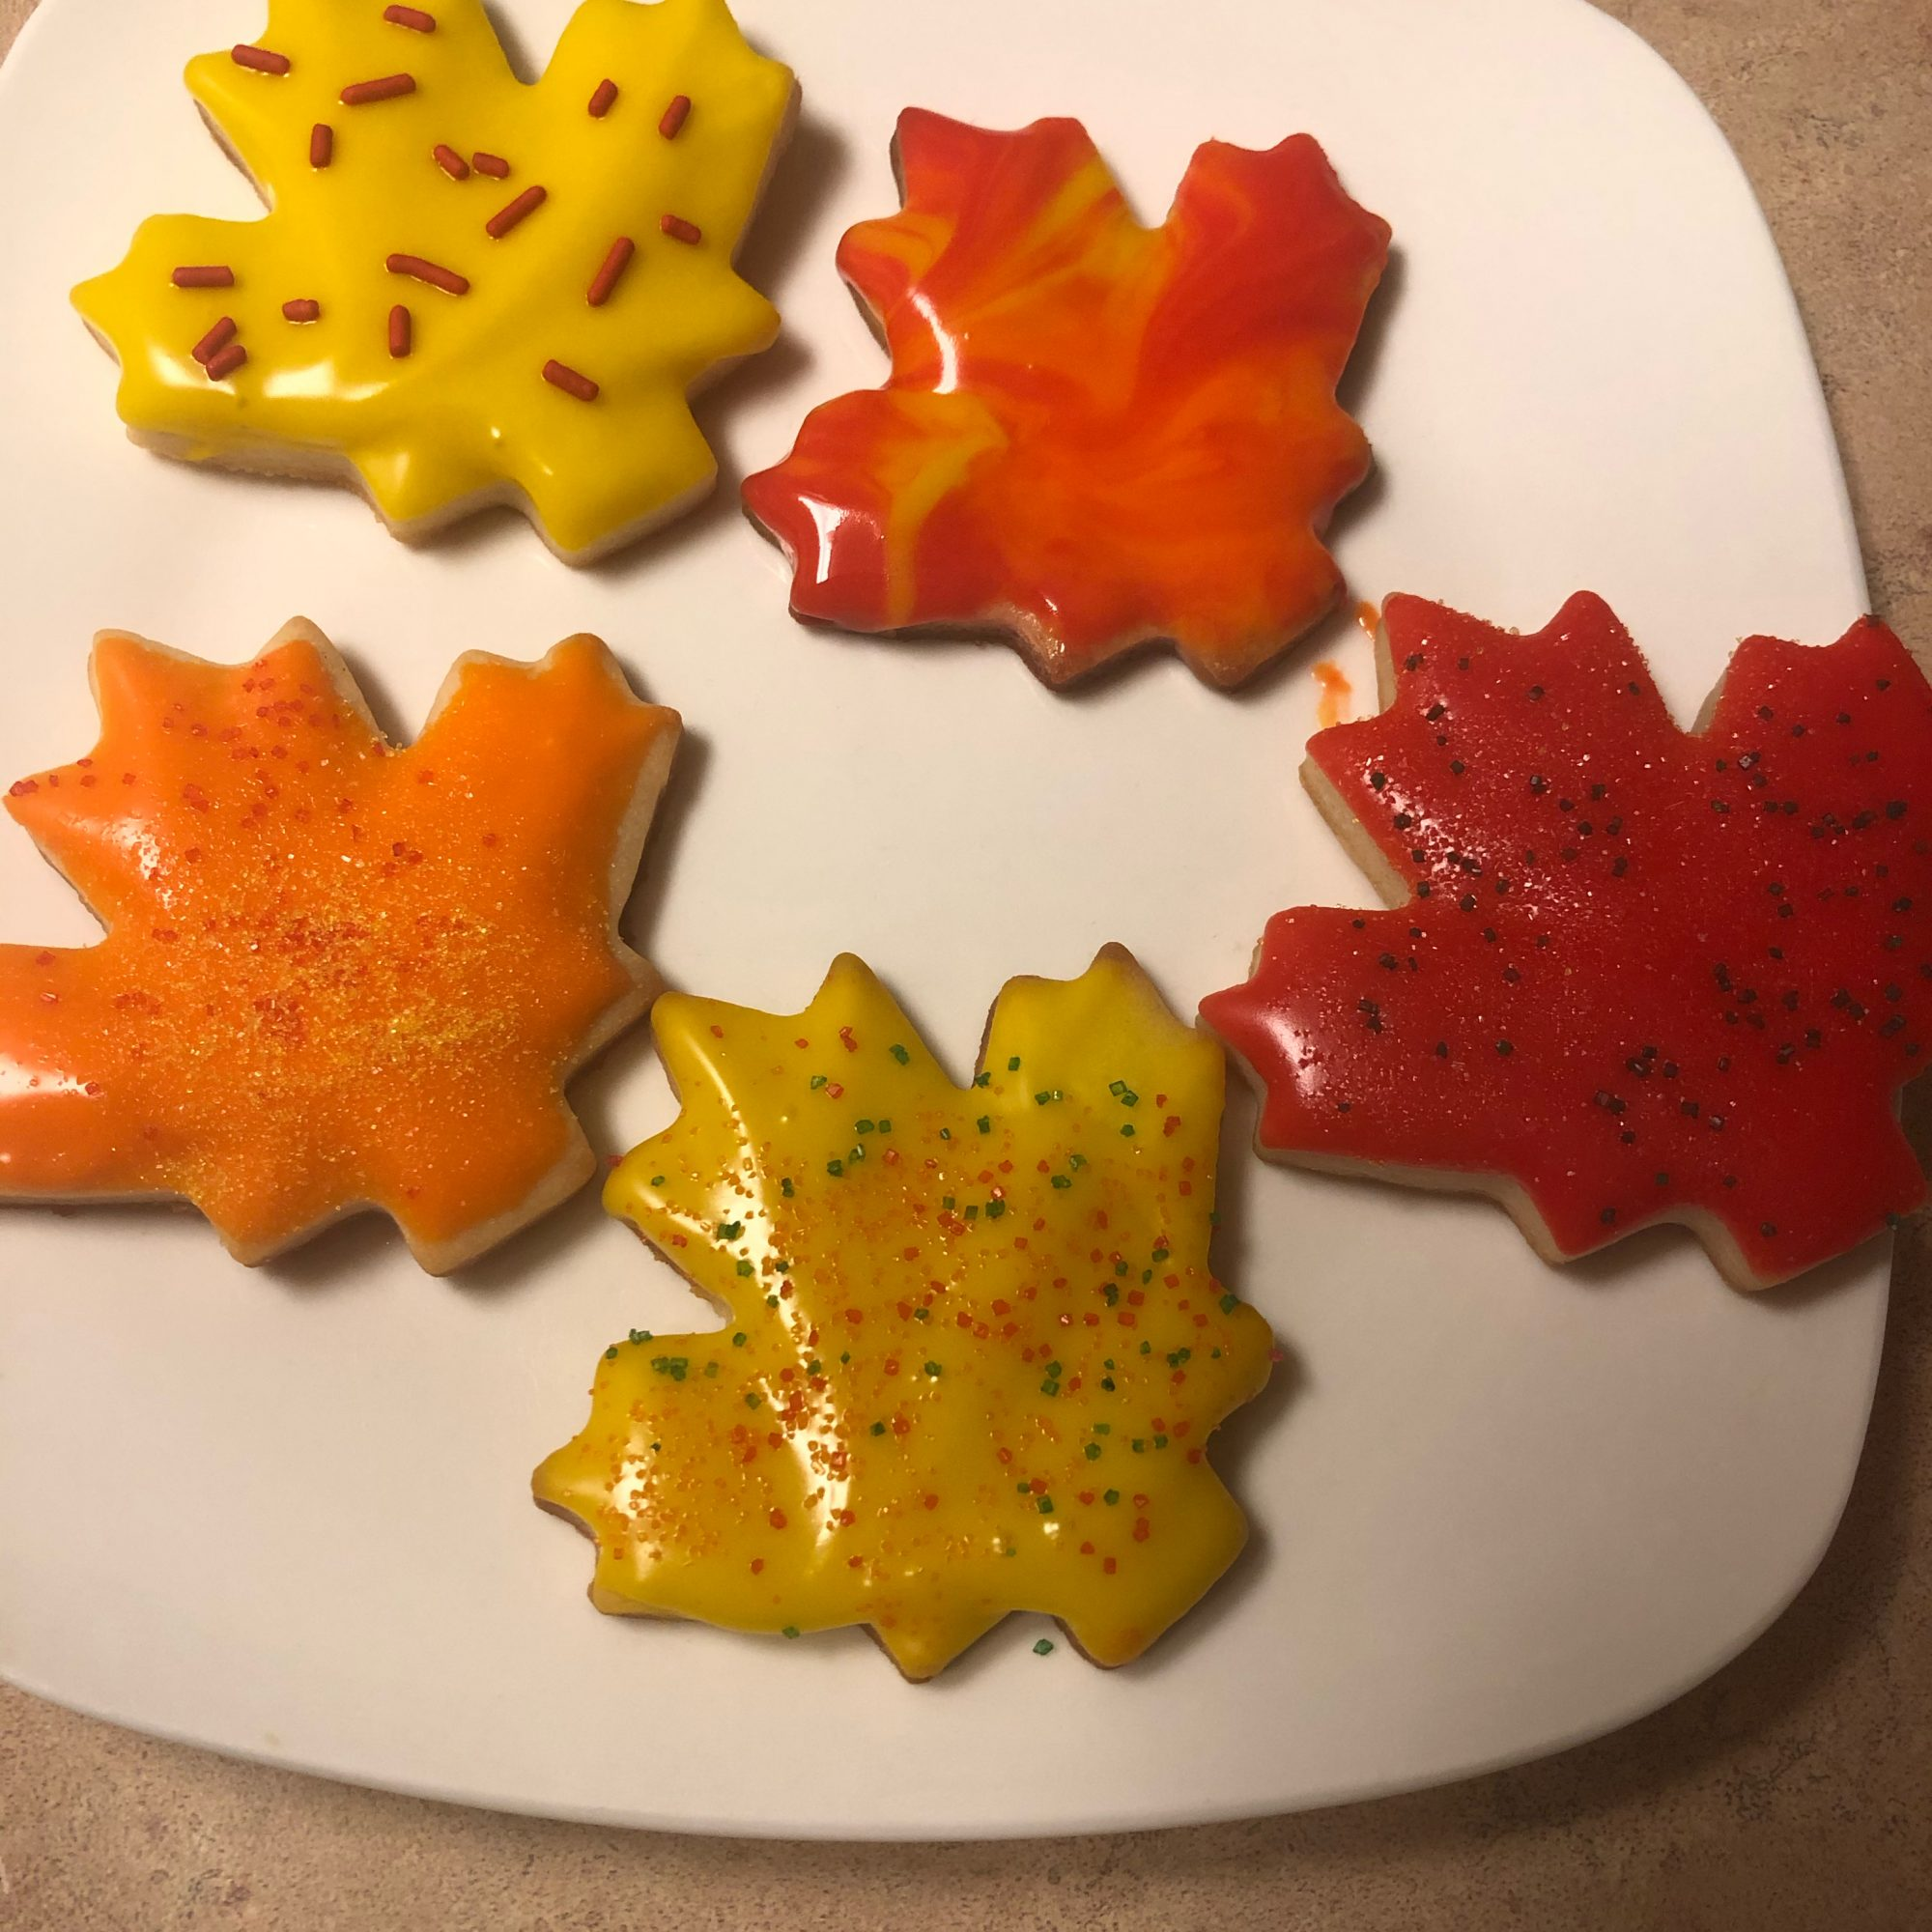 maple leaf-shaped cookies decorated for fall with orange, yellow, and red colors